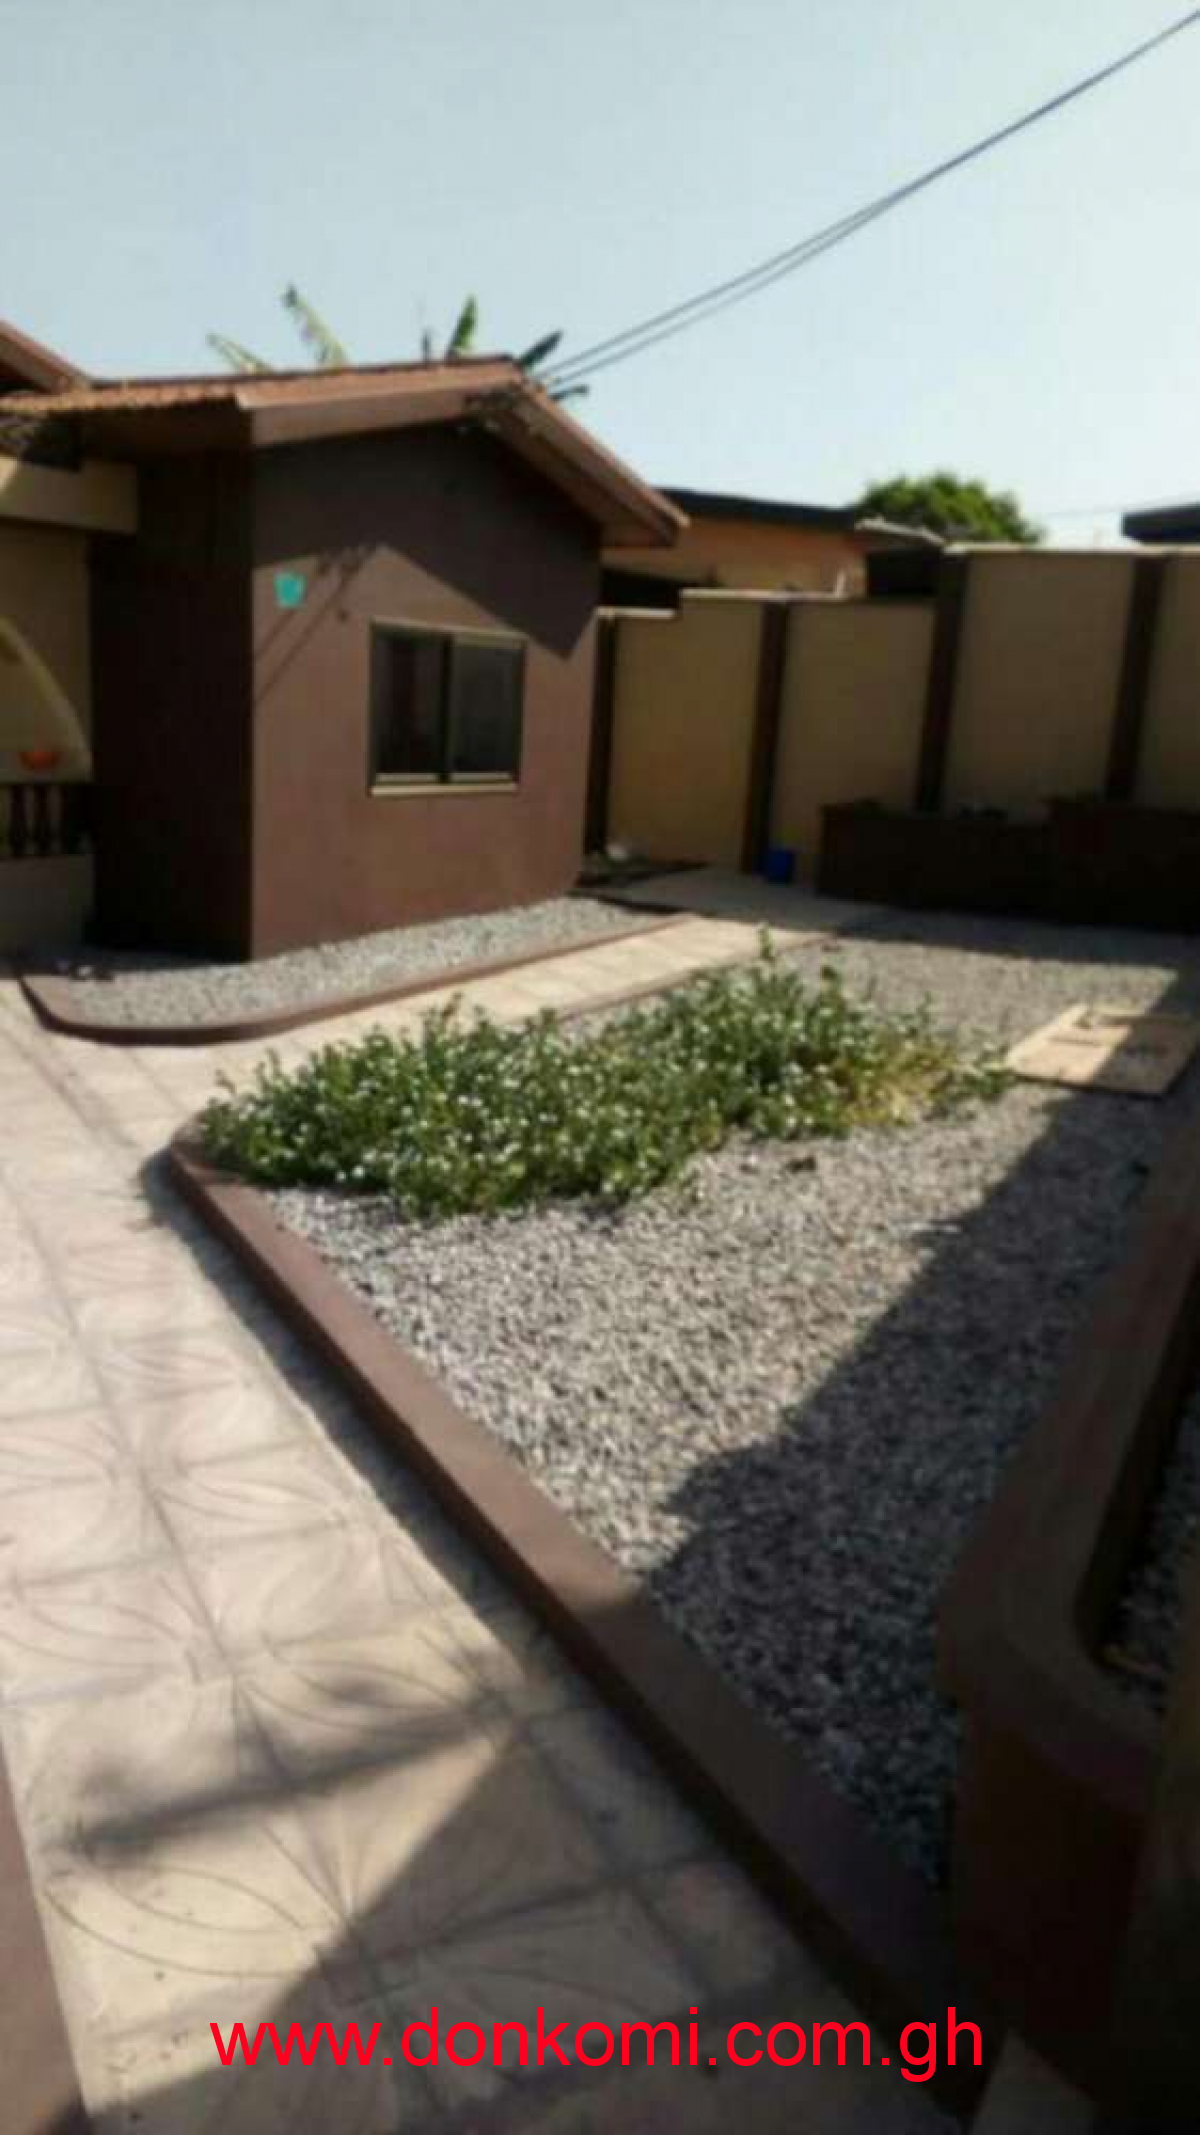 Newly built 5bedrooms s/c compound for 1yr